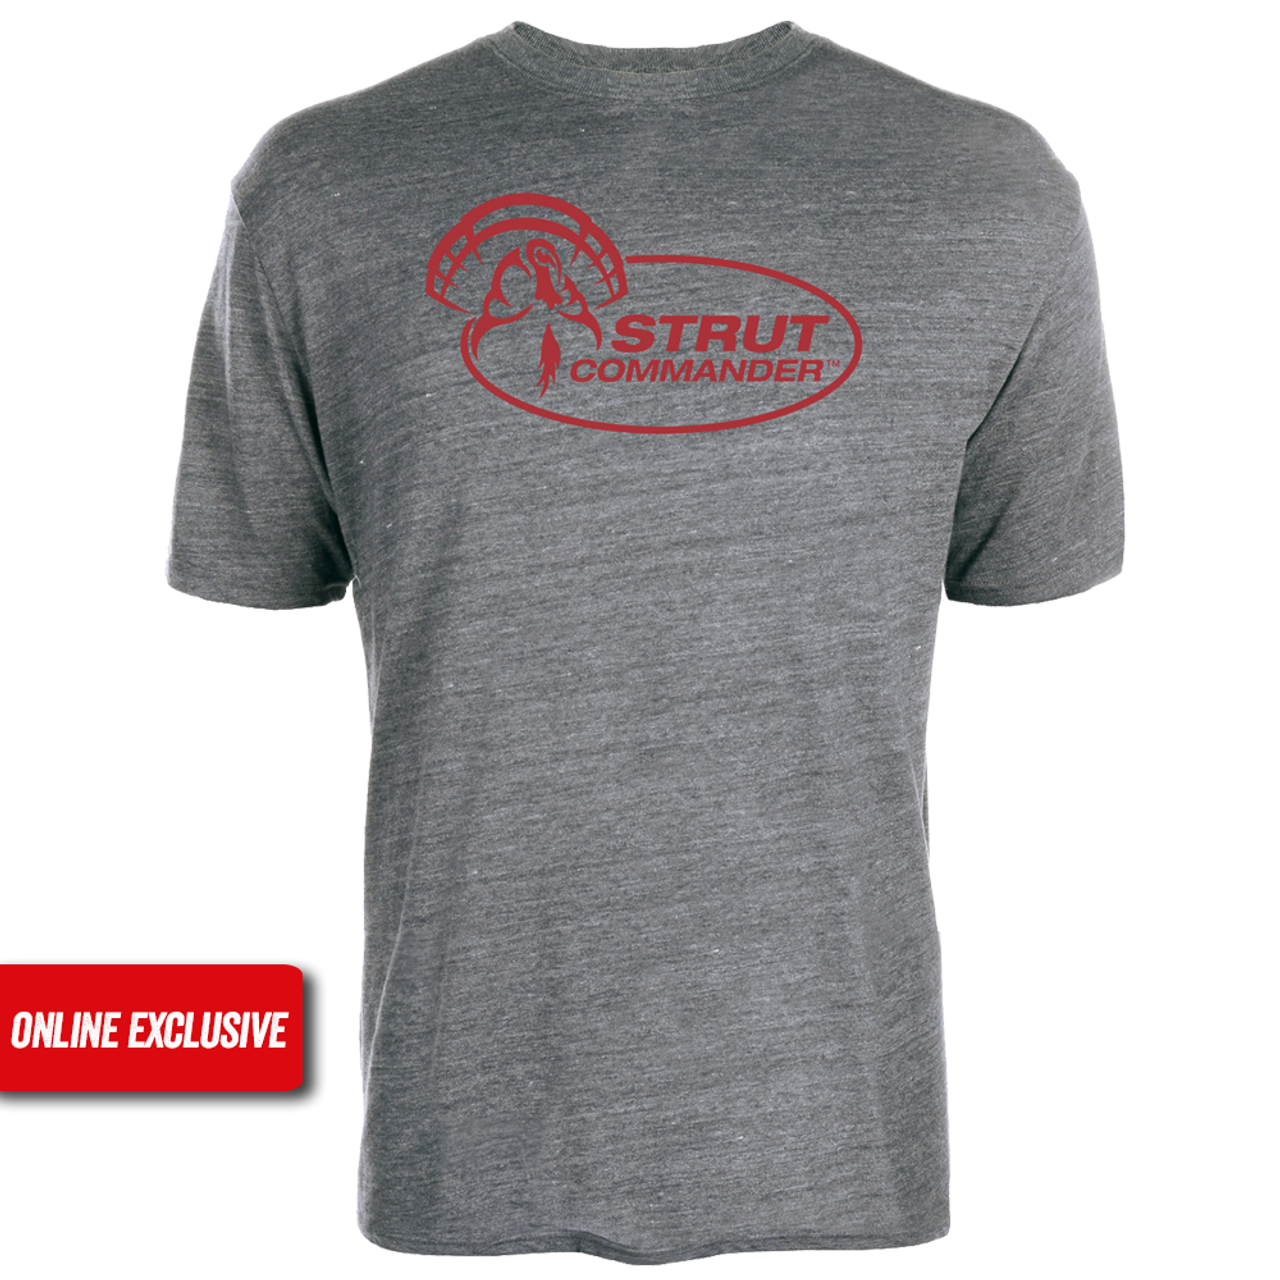 Heather Gray tri-blend cotton tee with the full Strut Commander logo screen printed on the front in red.